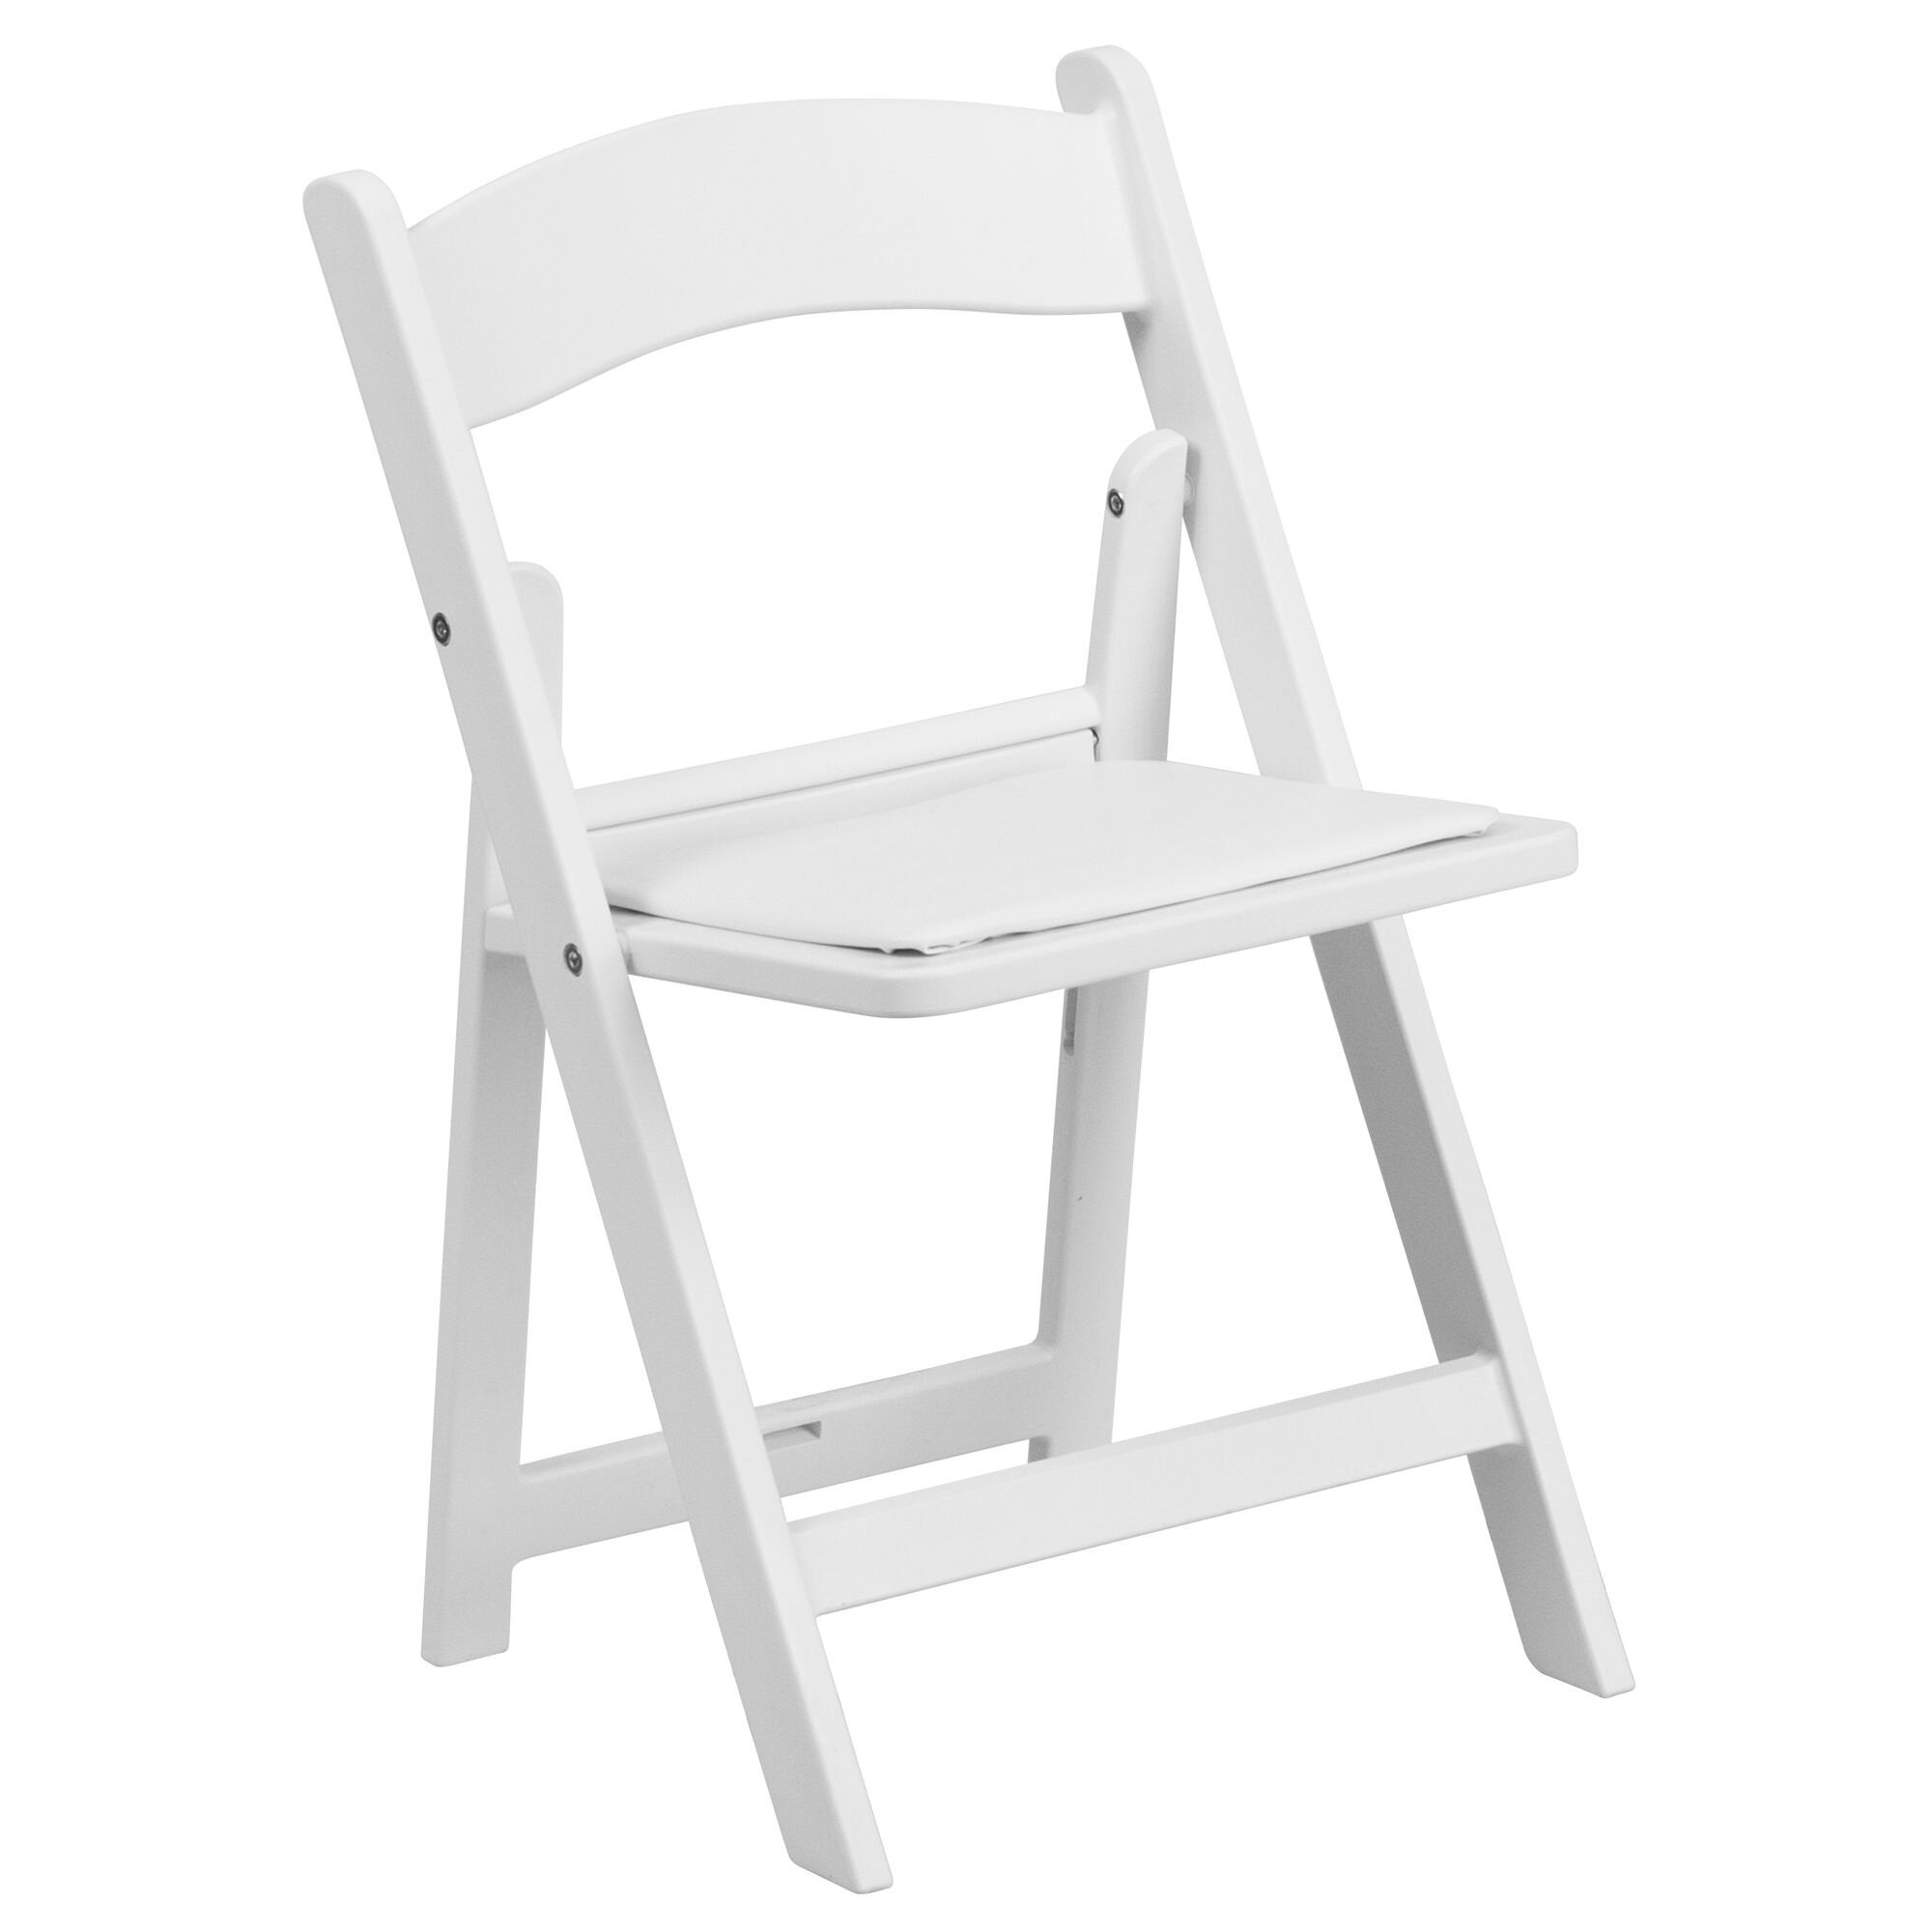 Copy of White Folding Chair